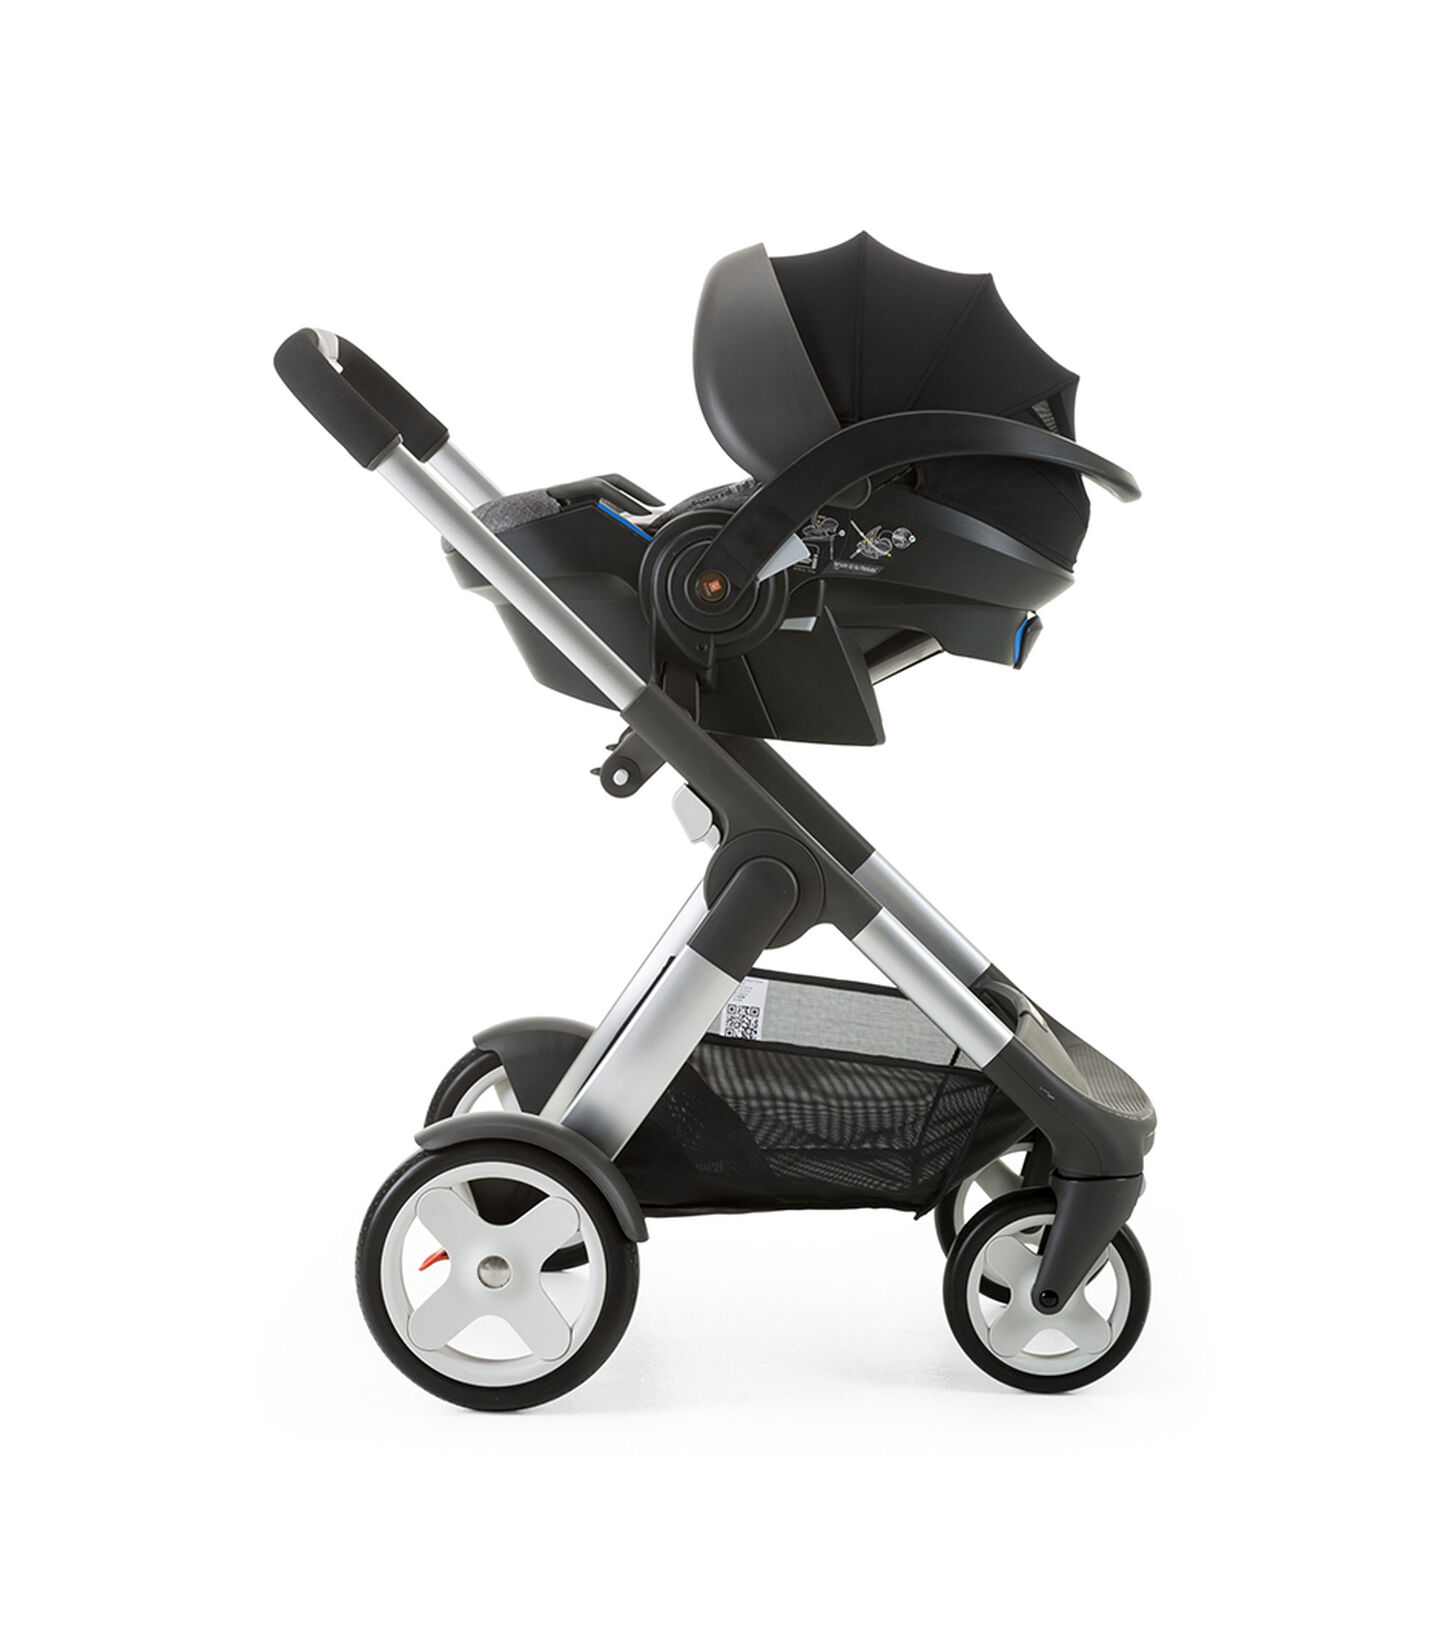 Stokke® iZi Go Modular™ by Besafe®, Black Melange. Mounted on Stokke® Crusi™.